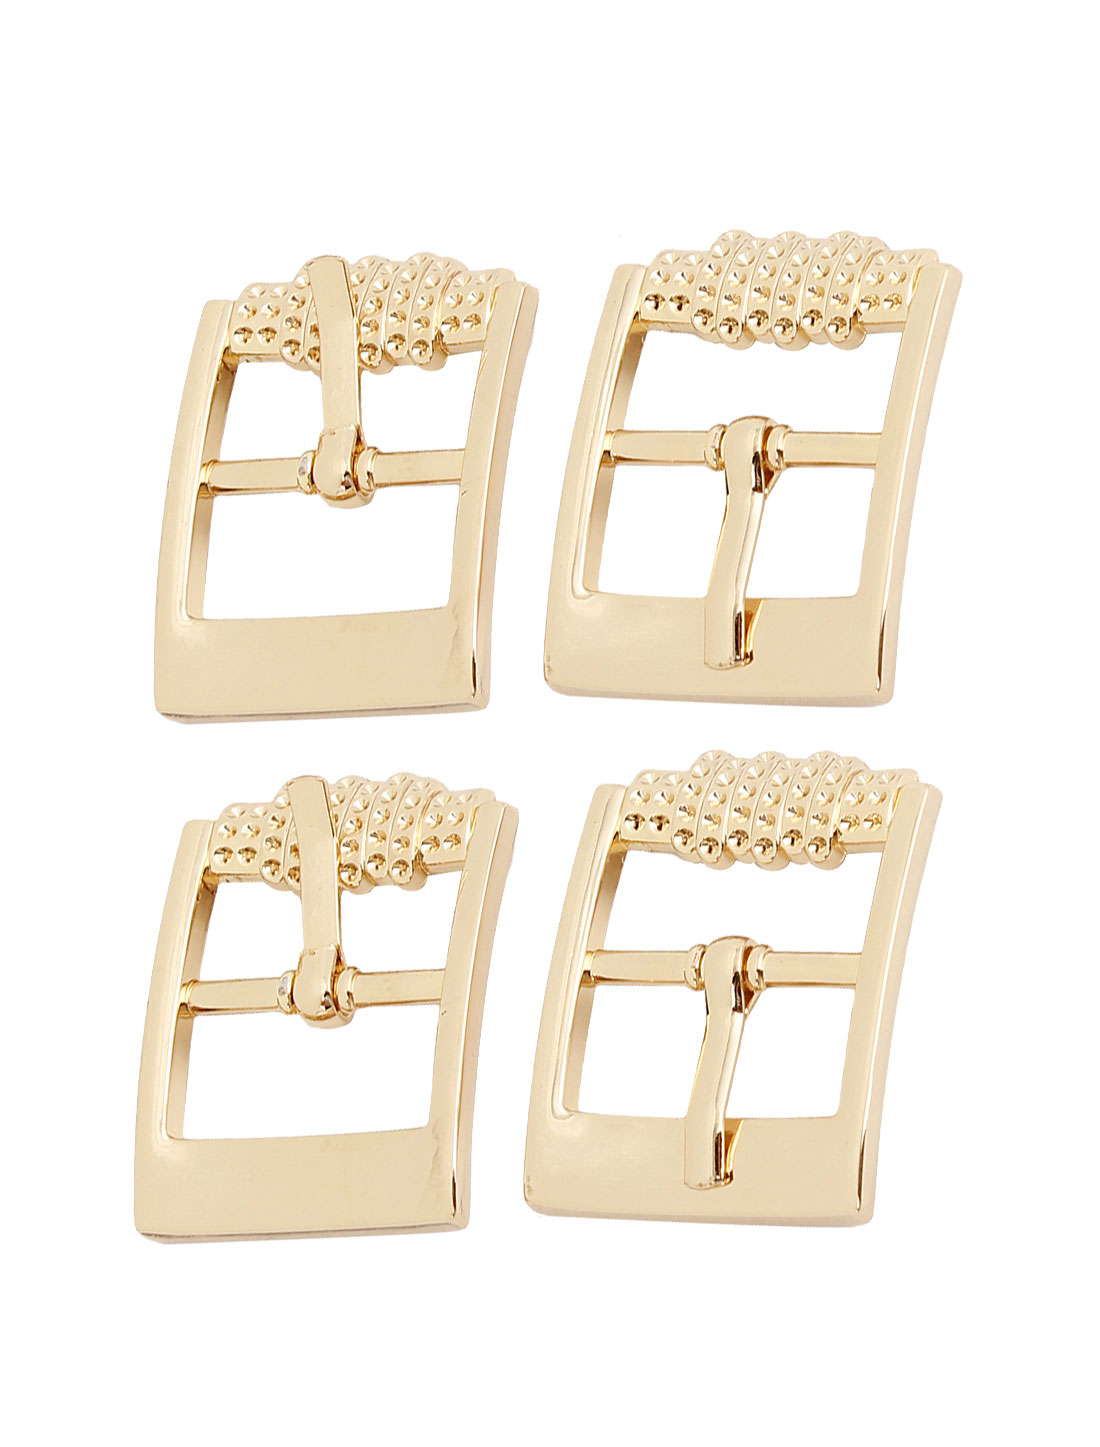 4 Pcs Gold Tone Metal Rectangular Belt Single Pin Buckle